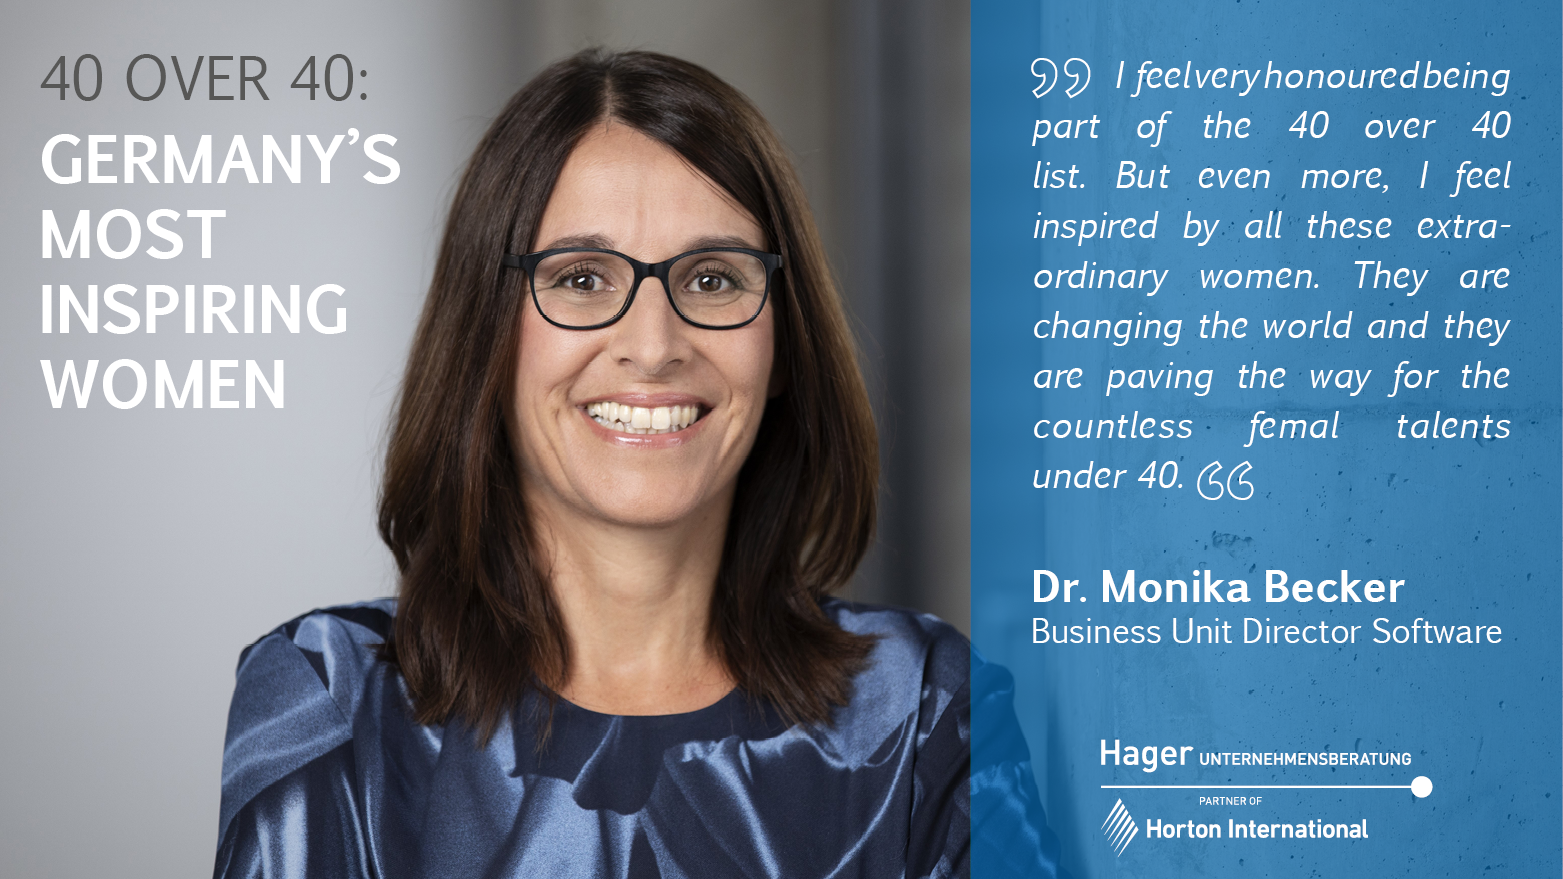 Dr. Monika Becker is one of Germany's most inspiring women